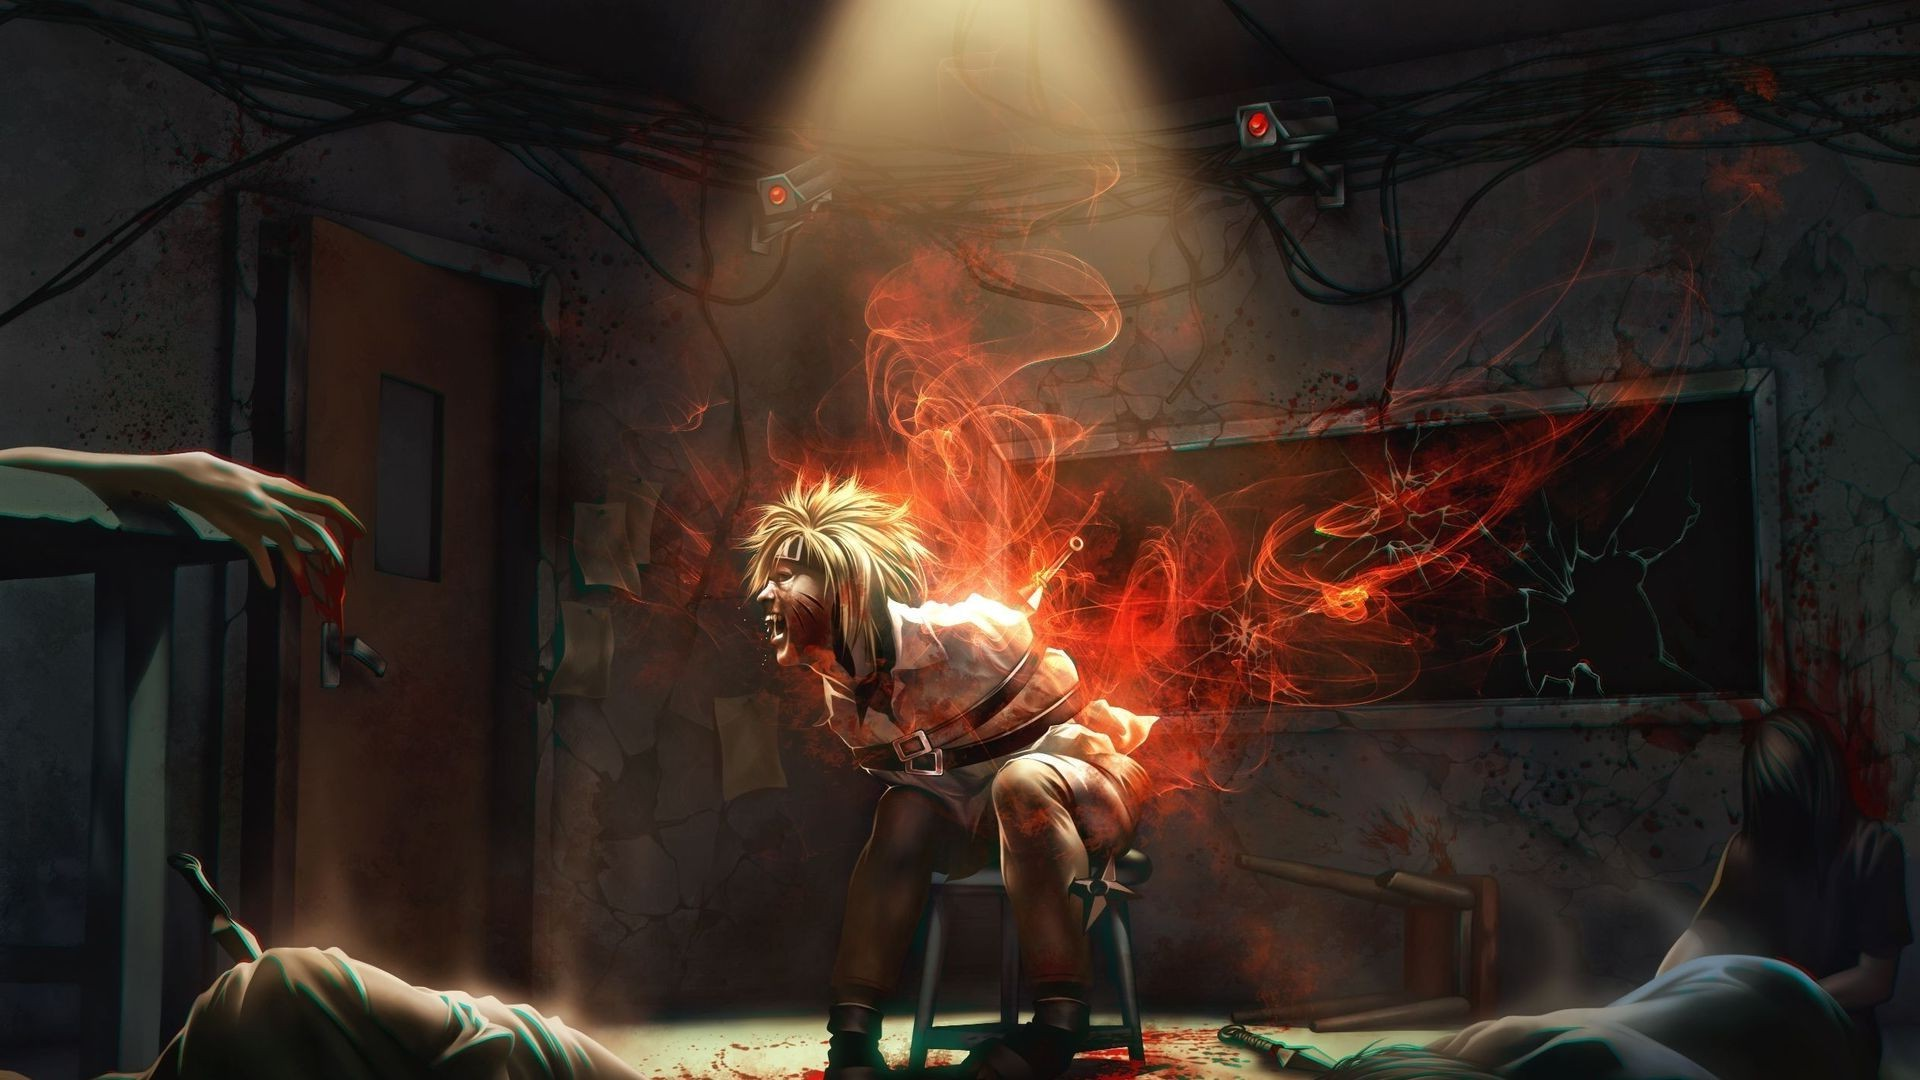 Wallpaper Girls Tatto Hd Ninjas Kyuubi Uzumaki Naruto Bound Spotlights